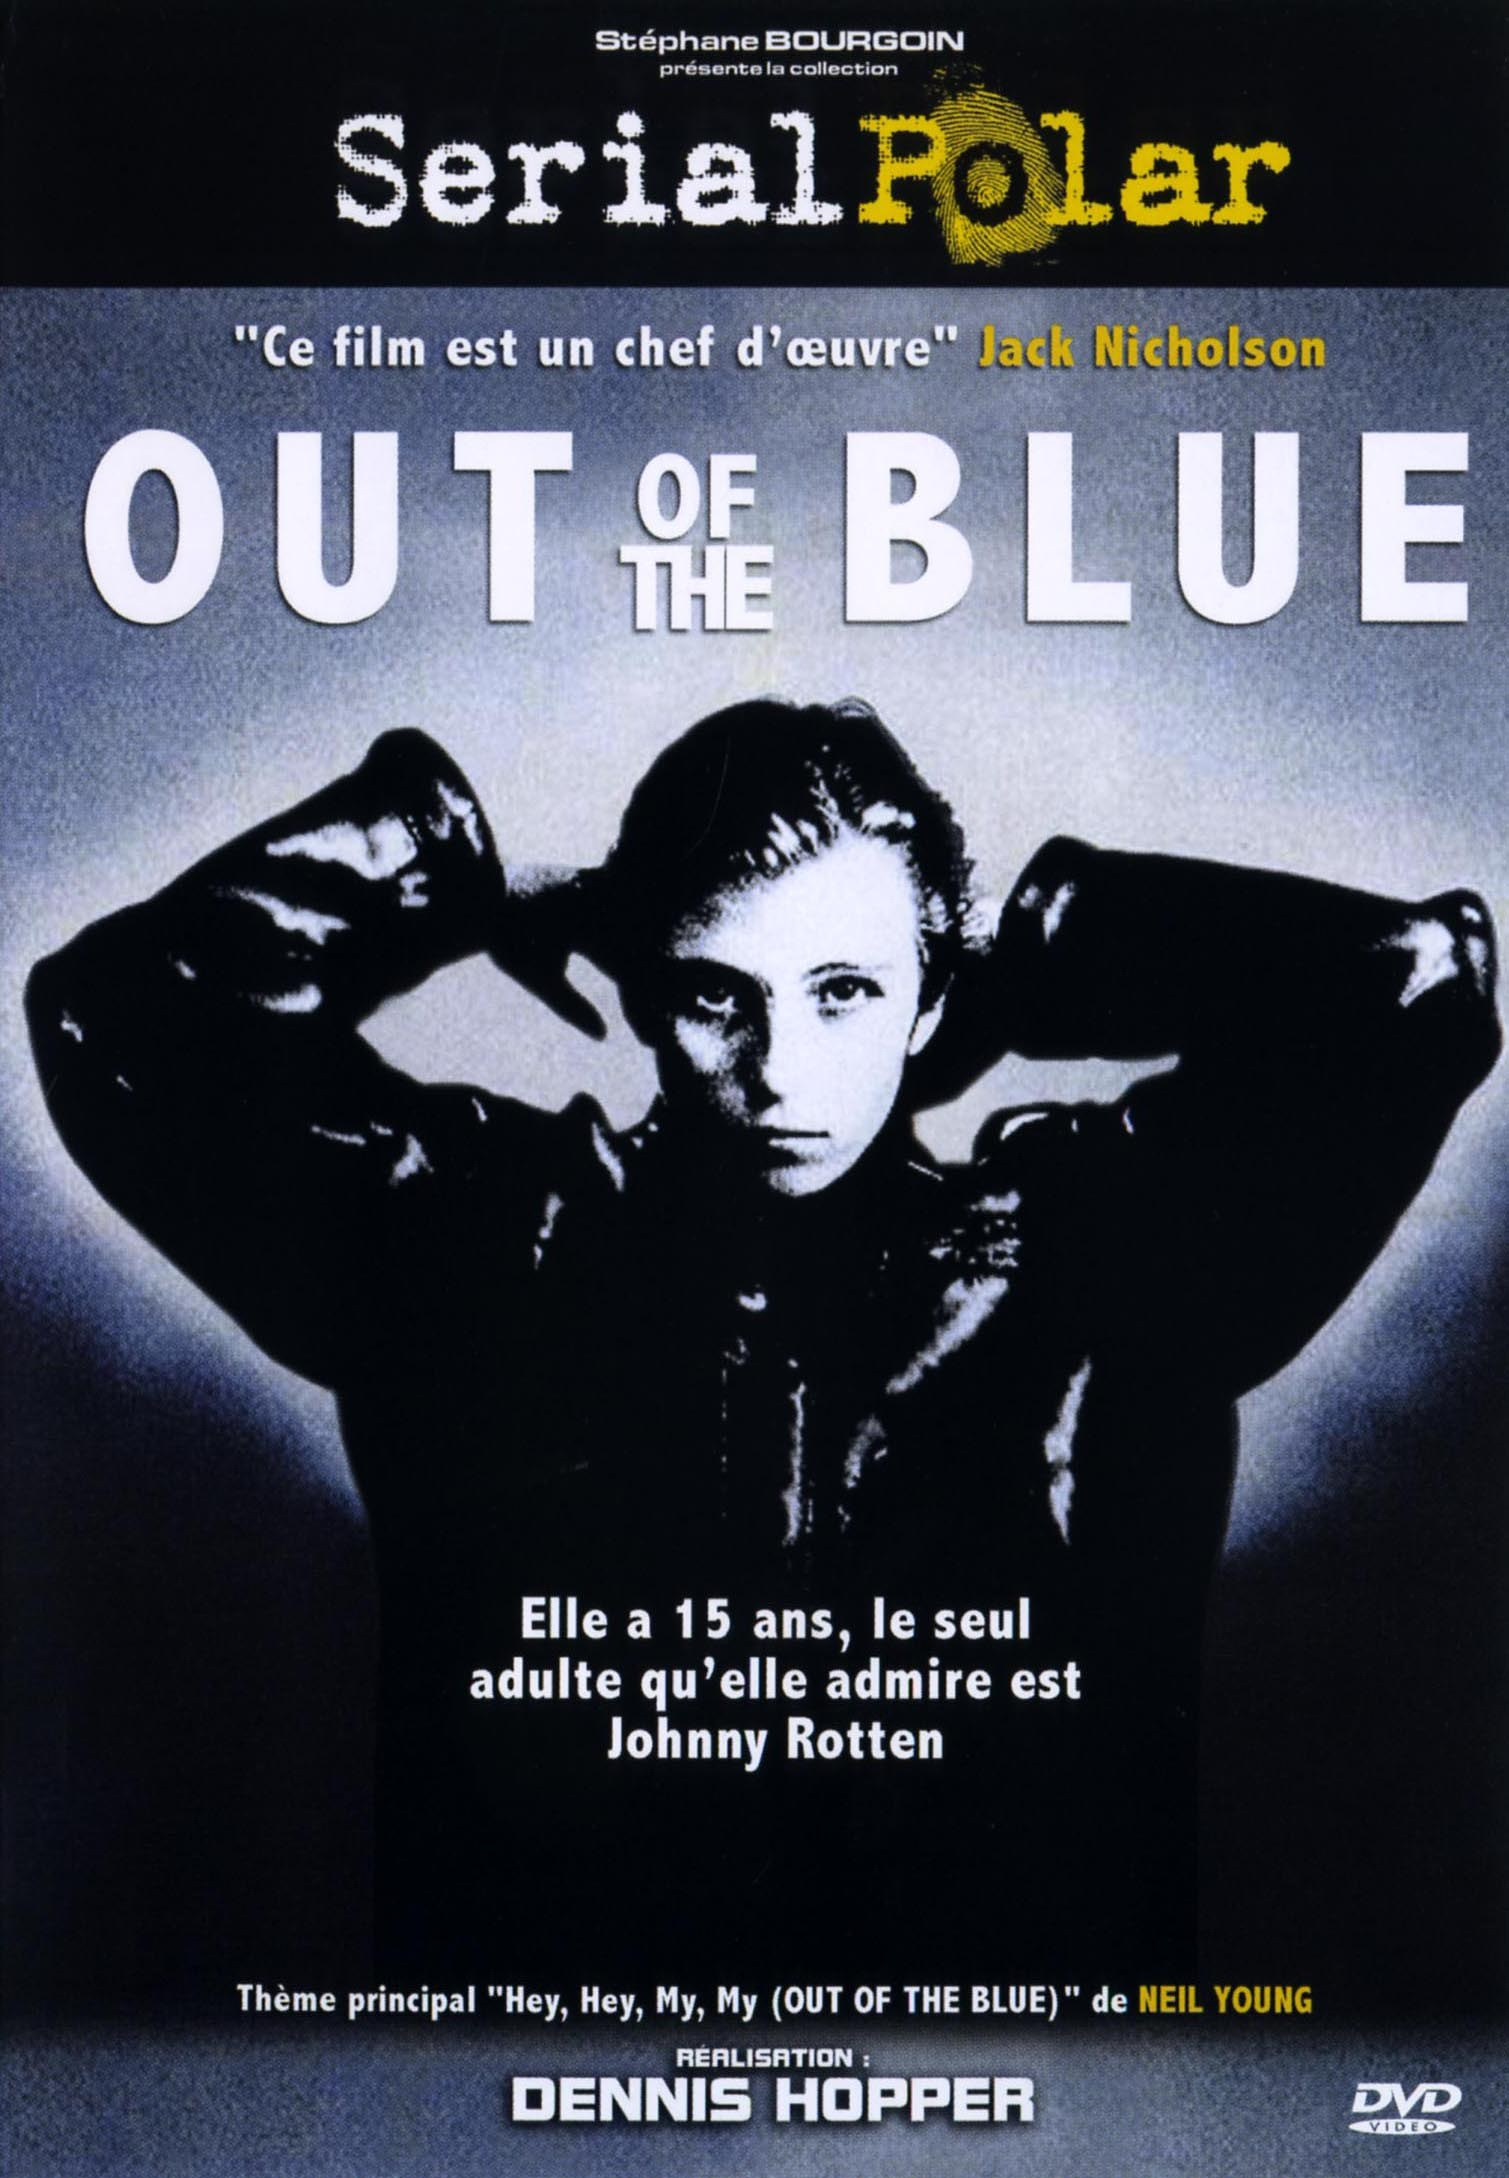 OUT OF THE BLUE - DVDSERIAL POLAR